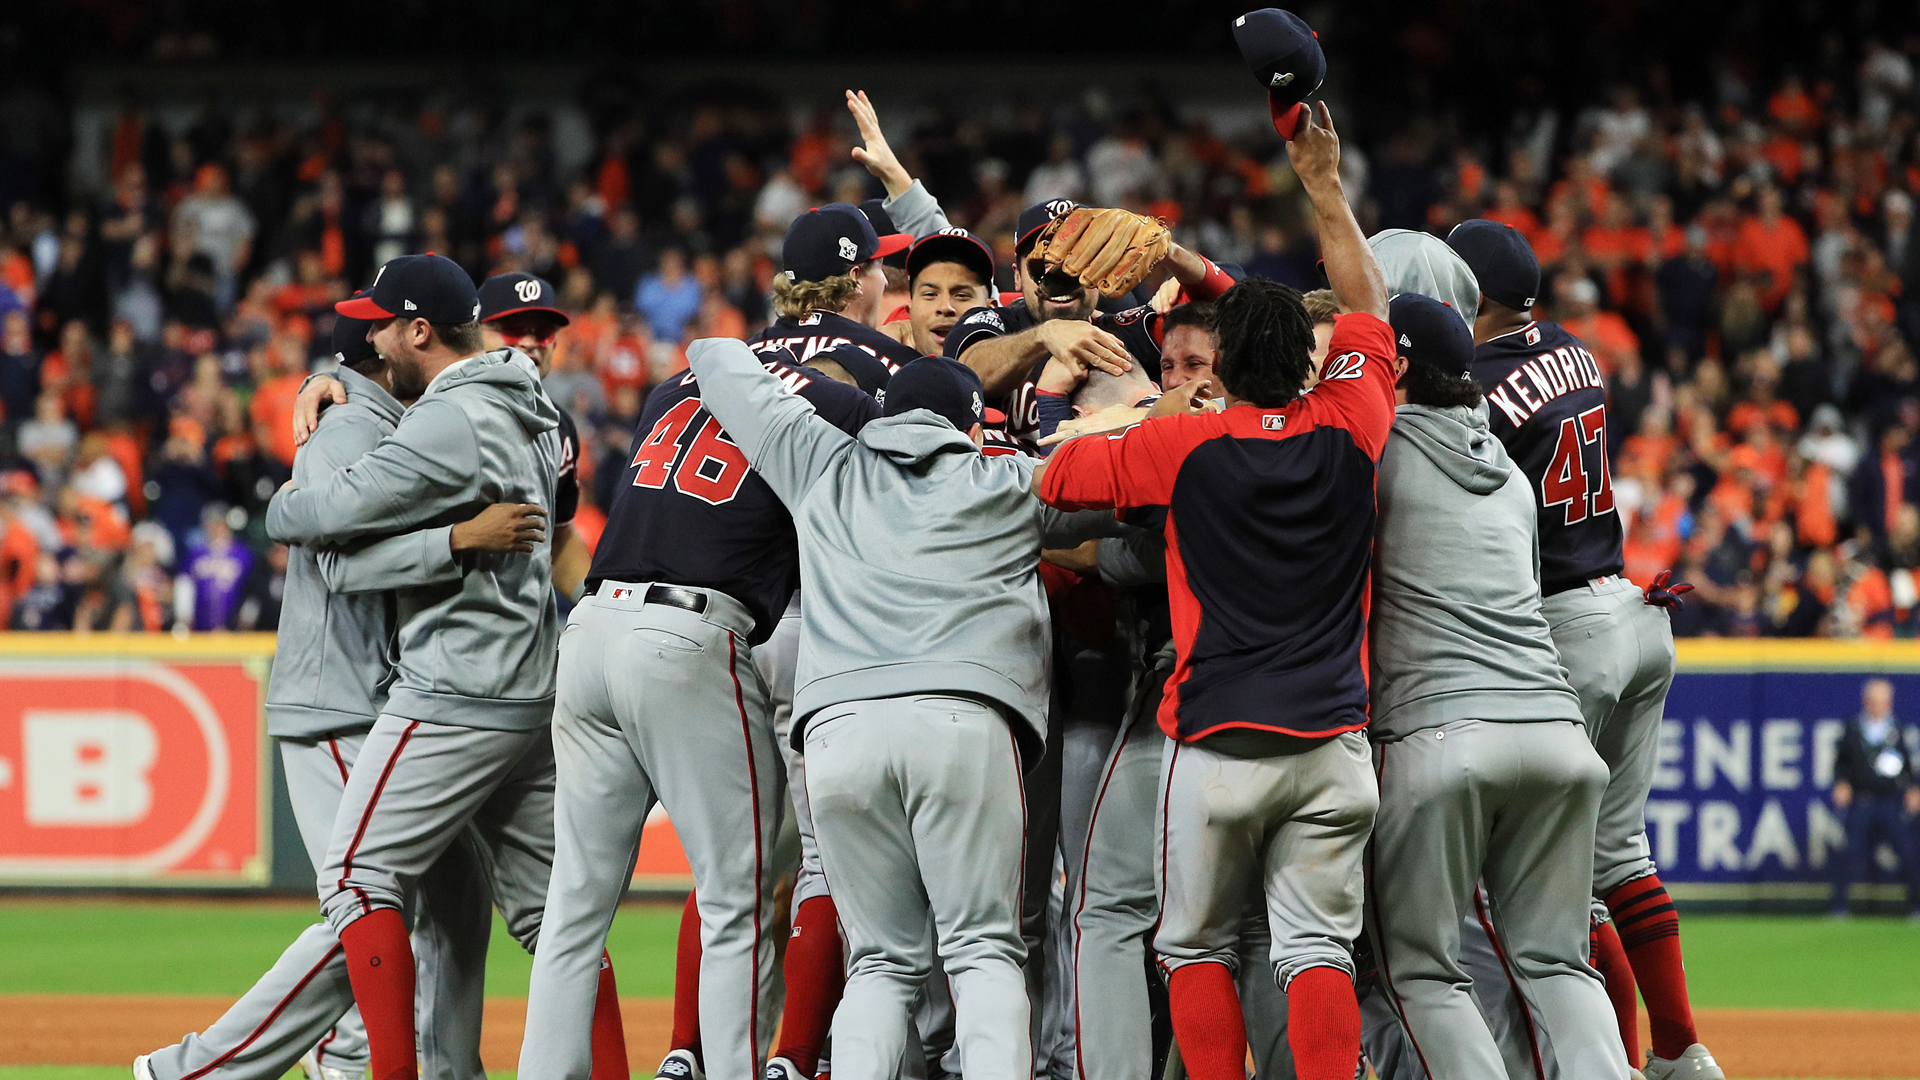 The Washington Nationals celebrate after defeating the Houston Astros 6-2 in Game Seven to win the 2019 World Series in Game Seven of the 2019 World Series at Minute Maid Park on October 30, 2019 in Houston, Texas. (Credit: Mike Ehrmann/Getty Images)